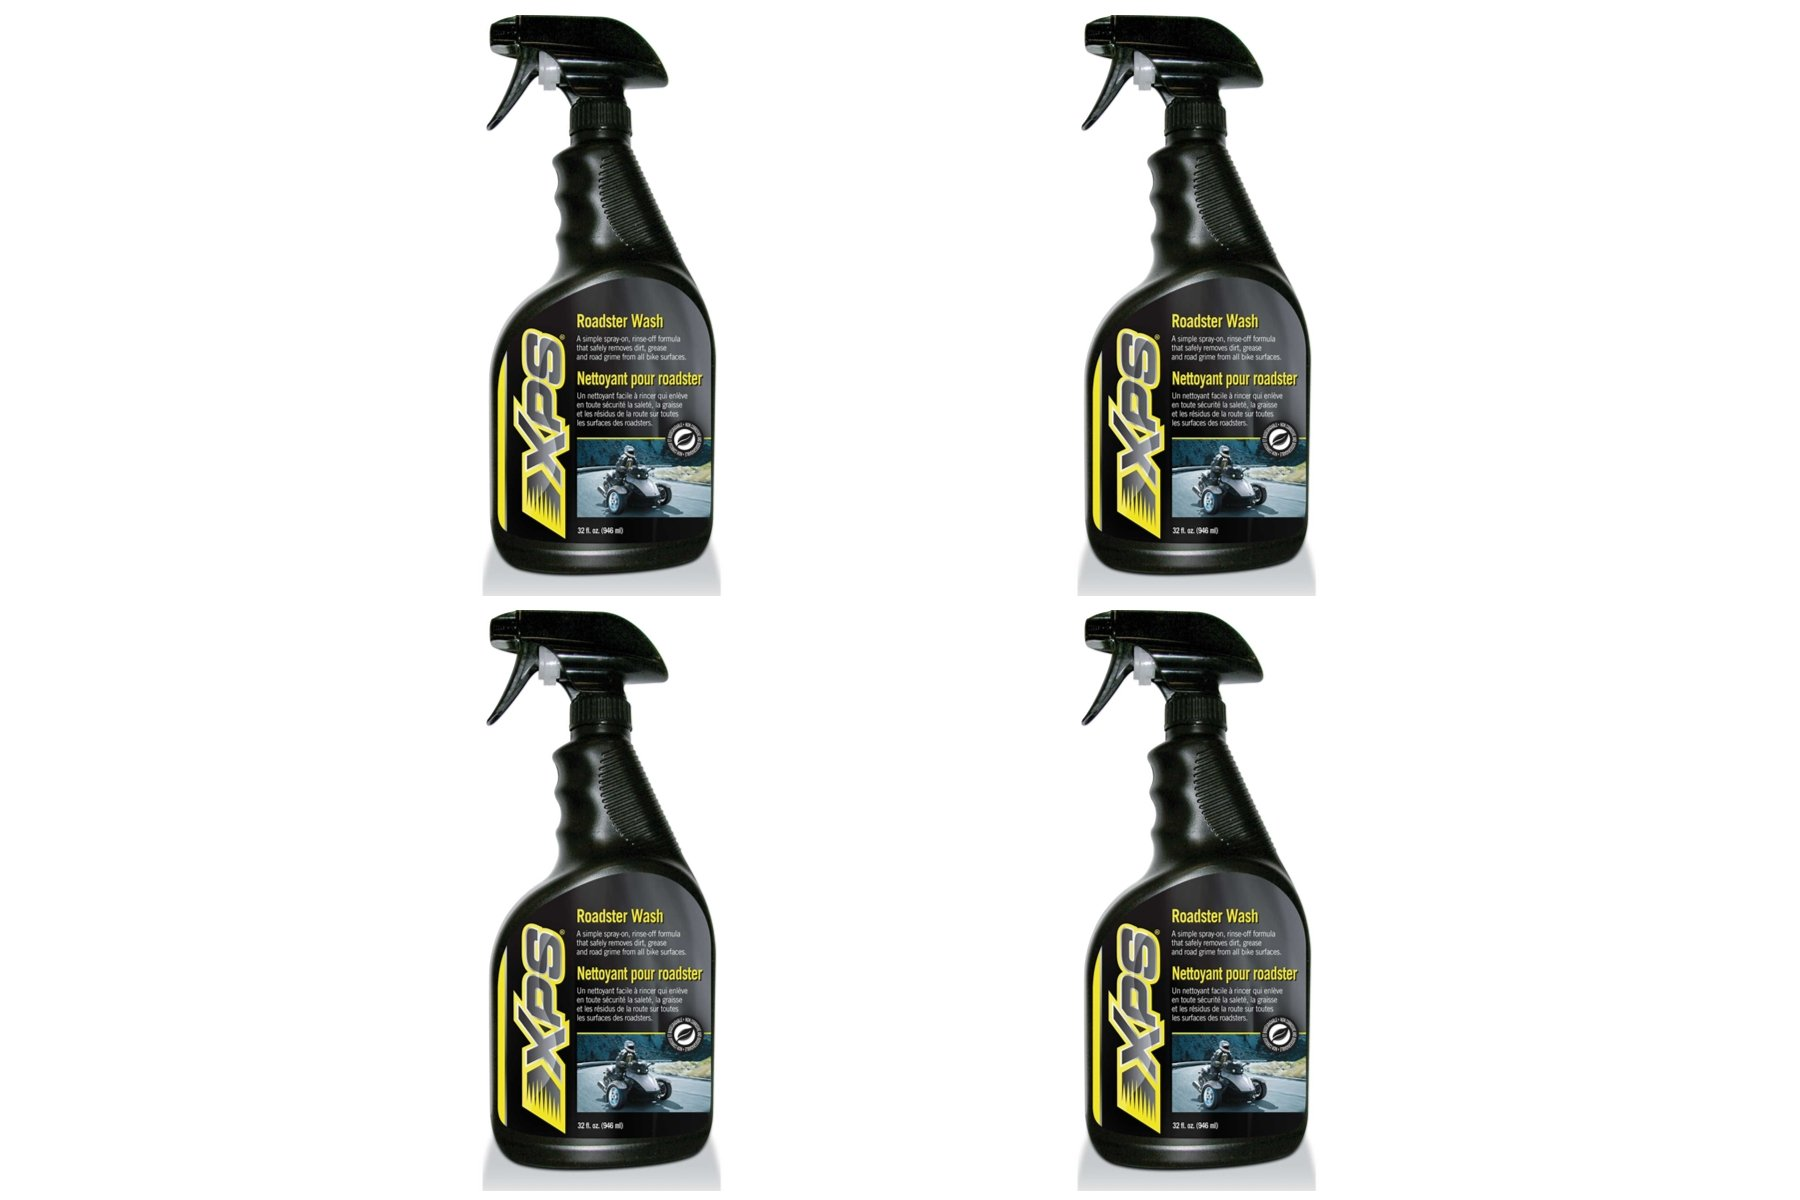 CAN-AM XPS ROADSTER WASH 4 pack of 32 OUNCE SPRAY BOTTLE #219701703